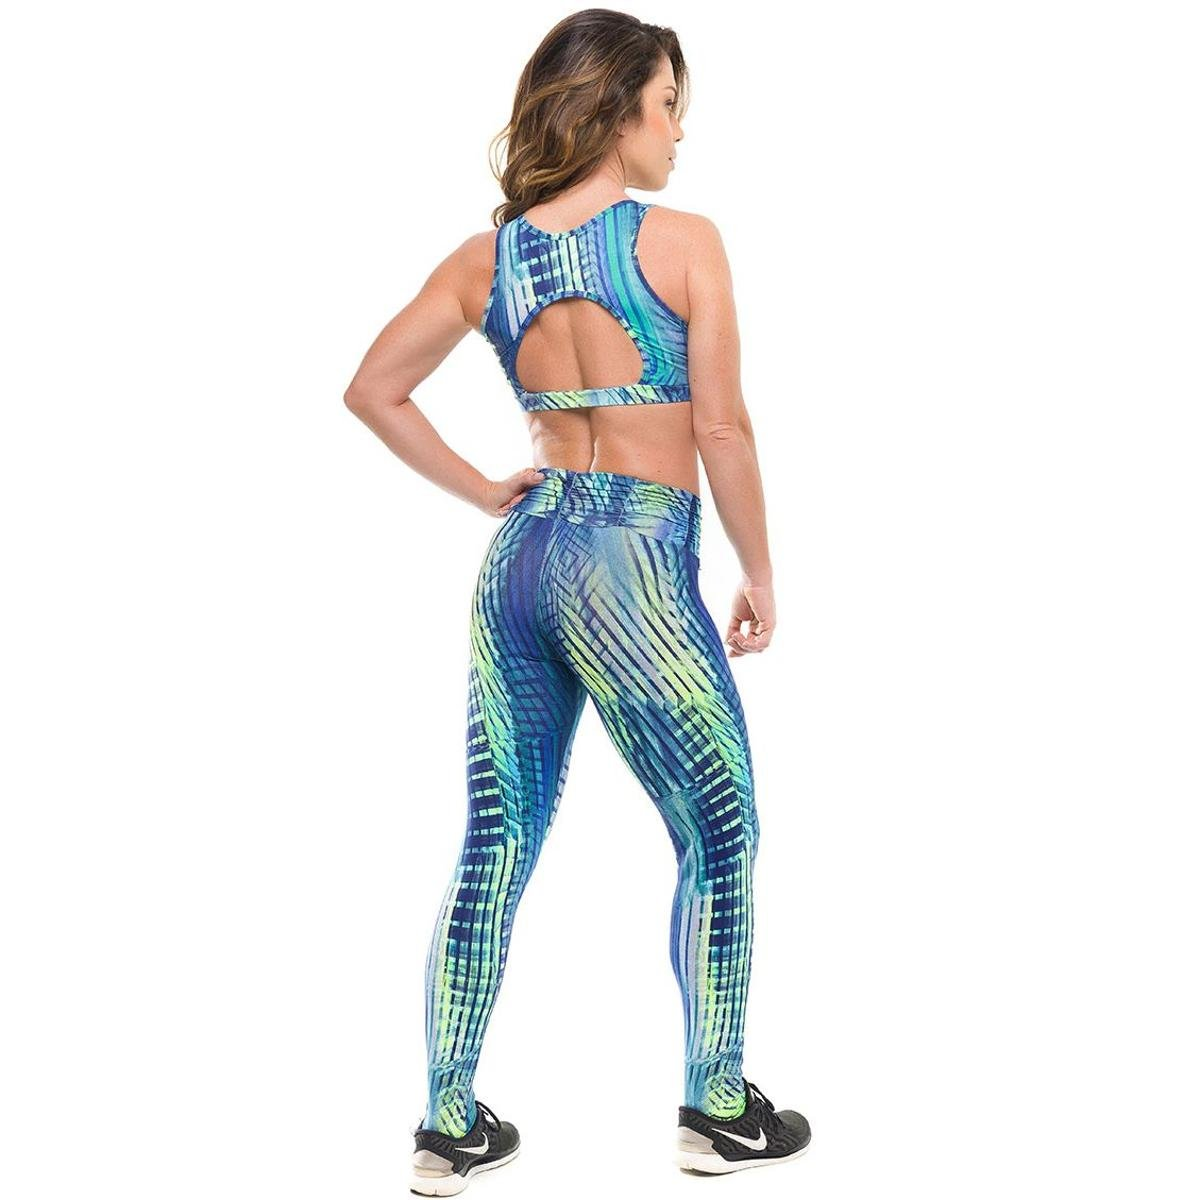 Proteção Conjunto Fitness Royal Com Authentic Legging Feminino Sandy Sky Top Solar Azul pqXZpA